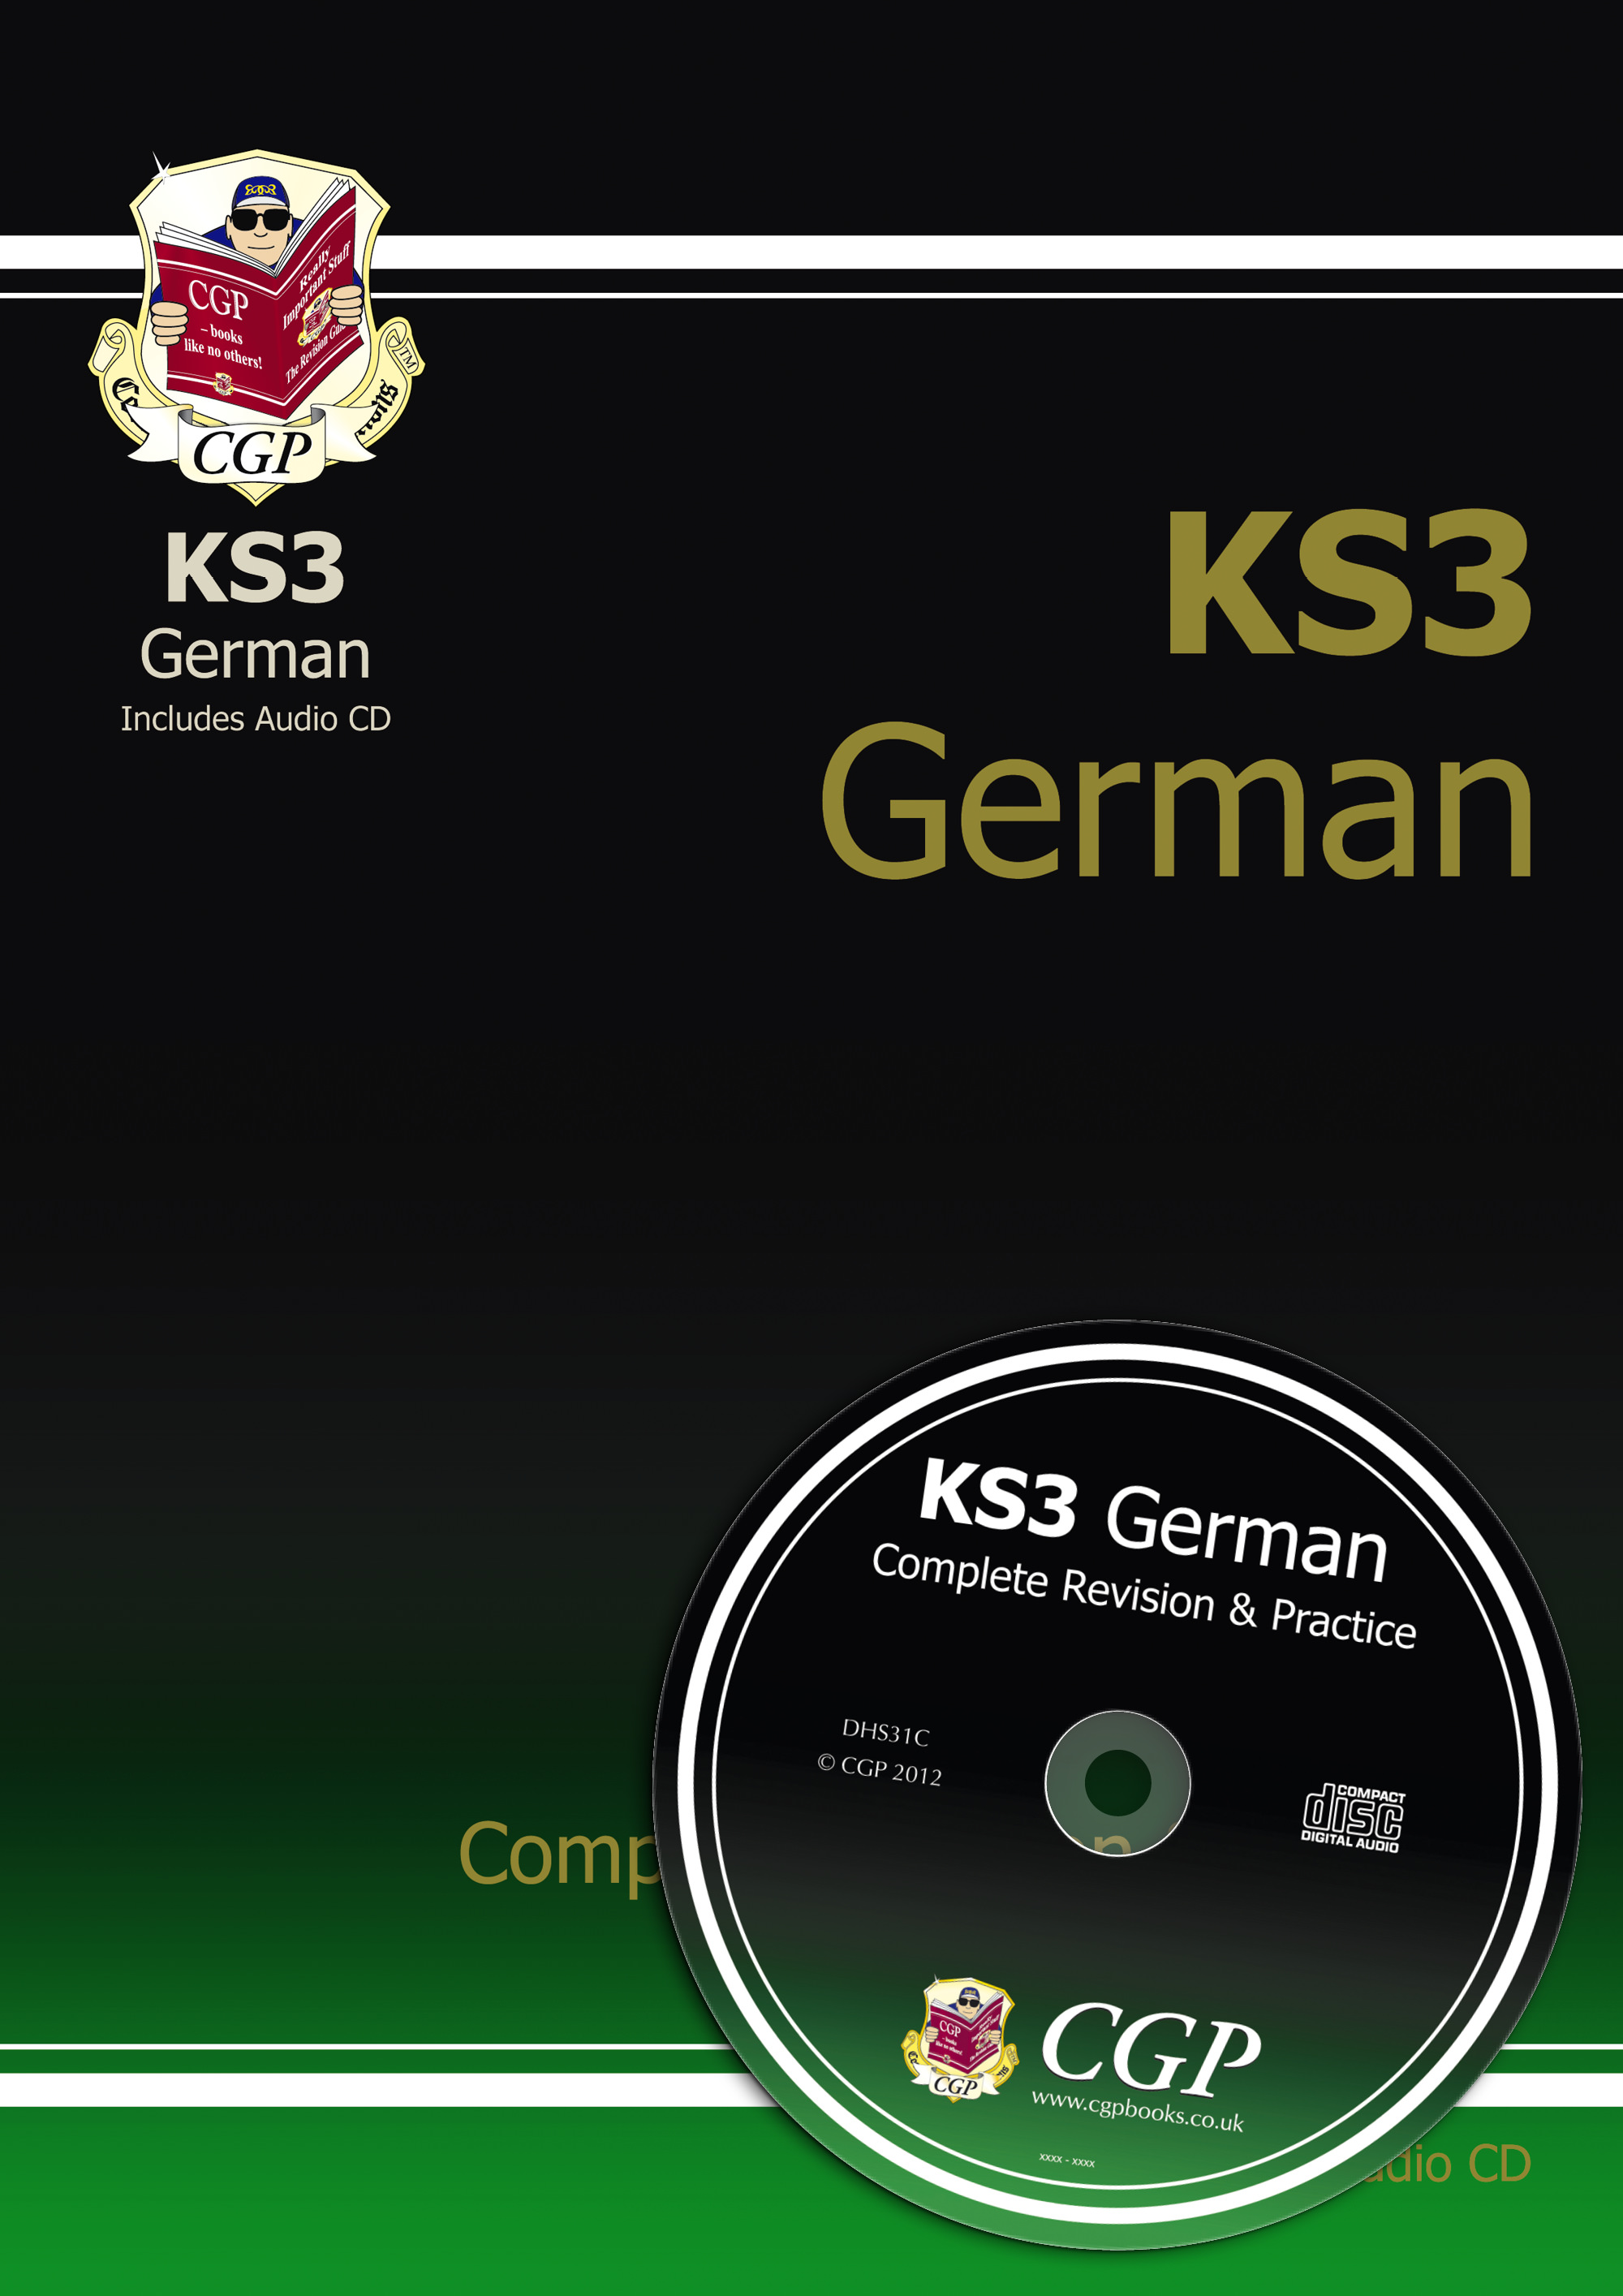 DHS31 - KS3 German Complete Revision & Practice with Audio CD